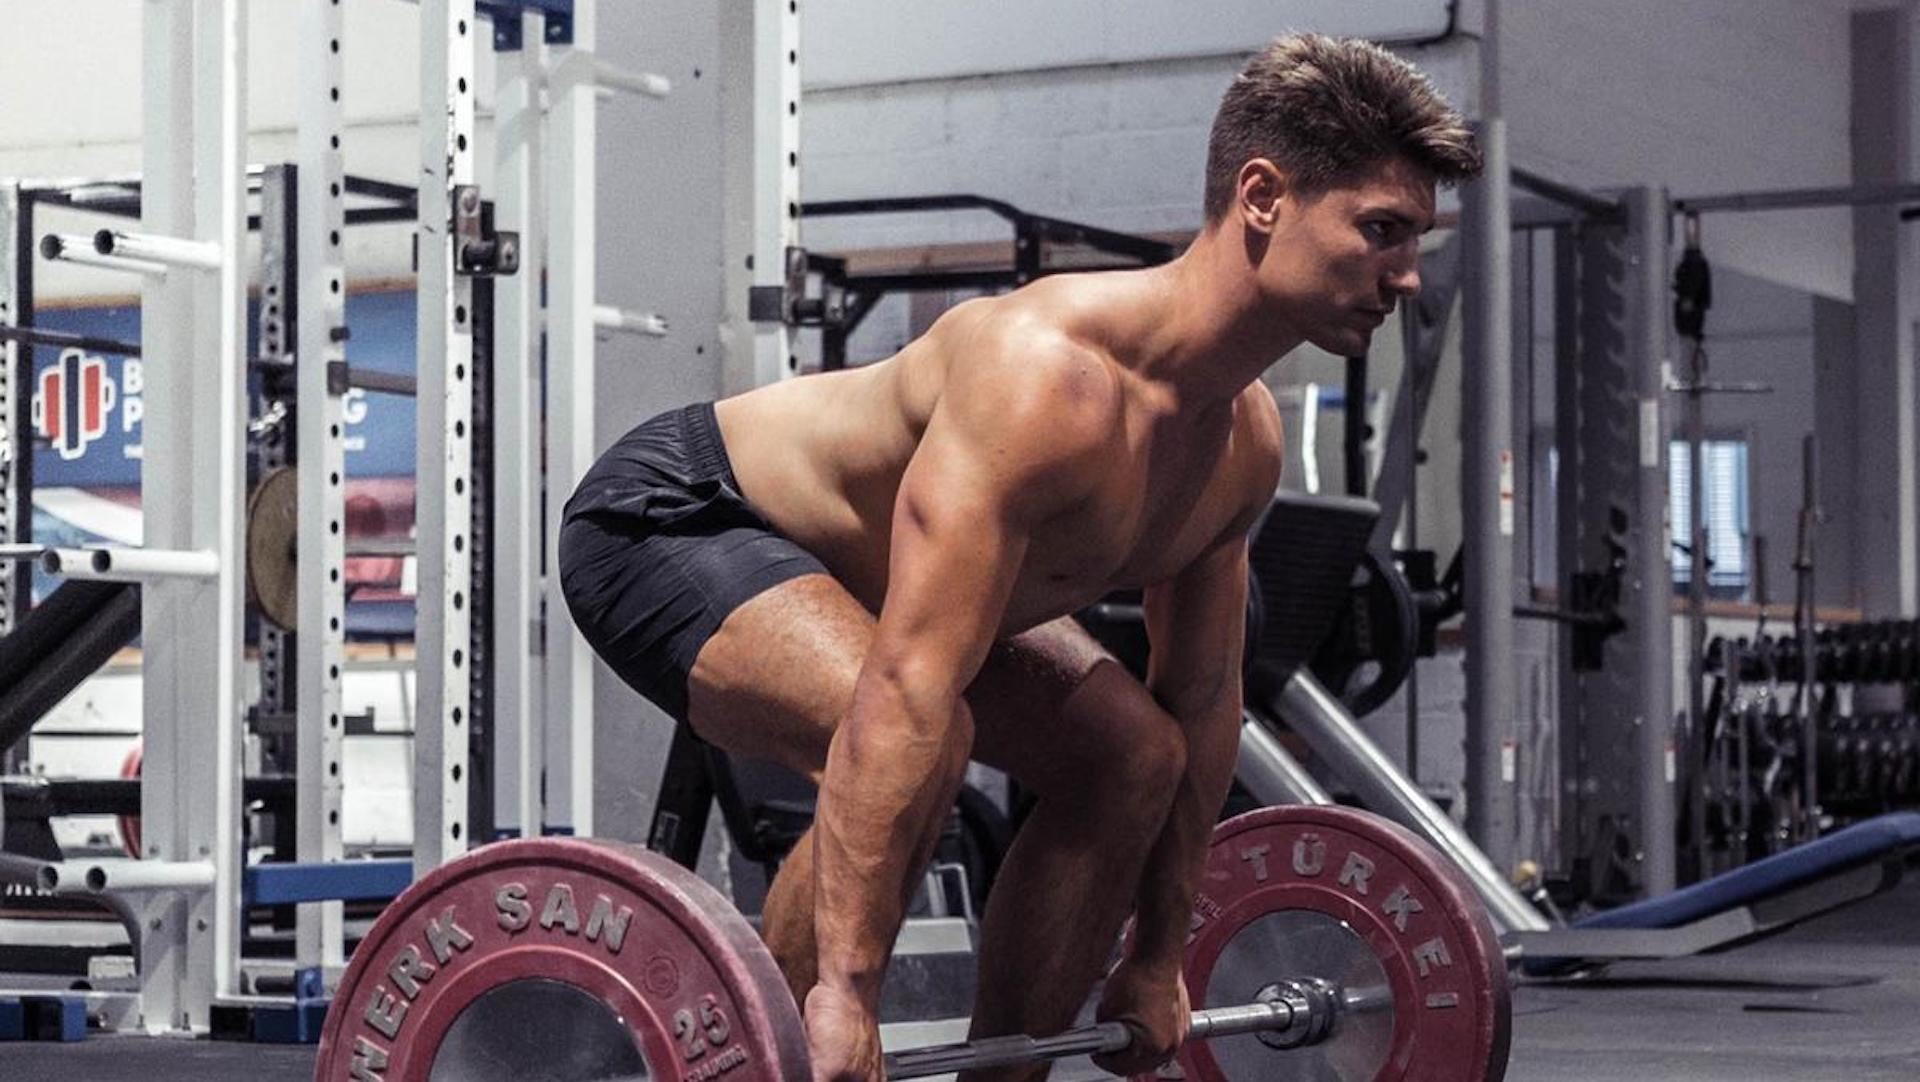 Best Leg Workouts This Leg Exercise Will Build Bigger More Toned Legs Do Not Neglect Leg Day T3